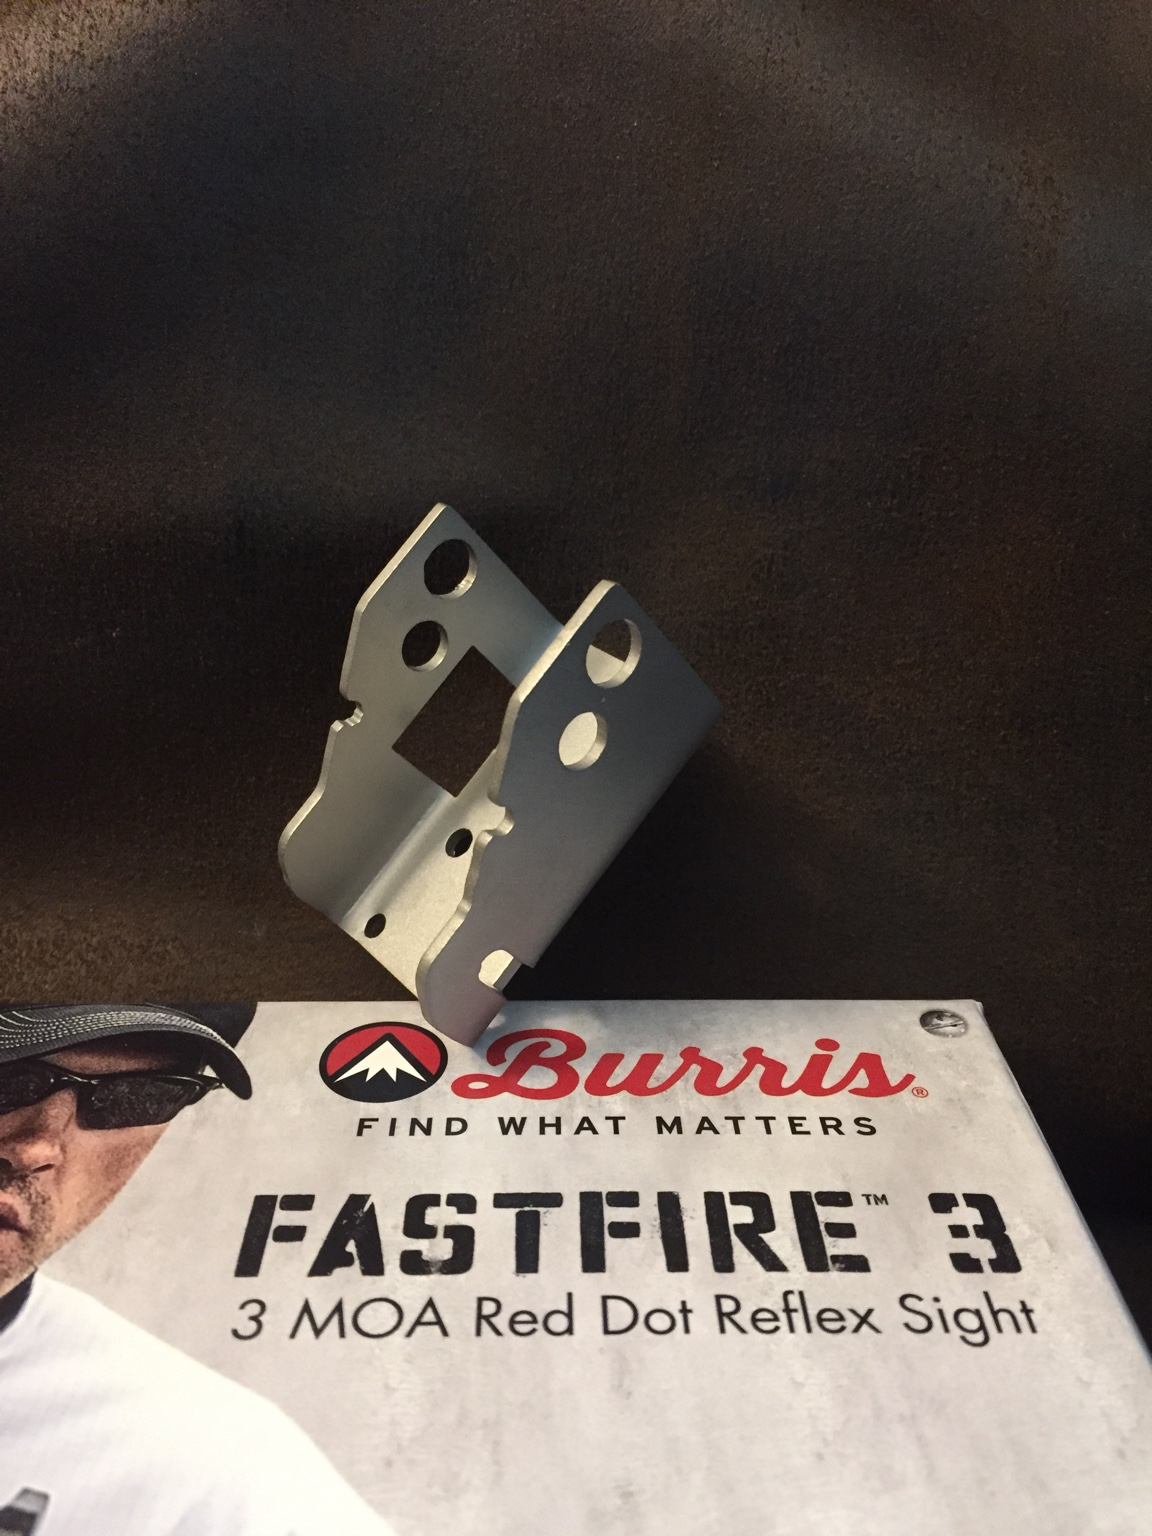 Fastfire protector